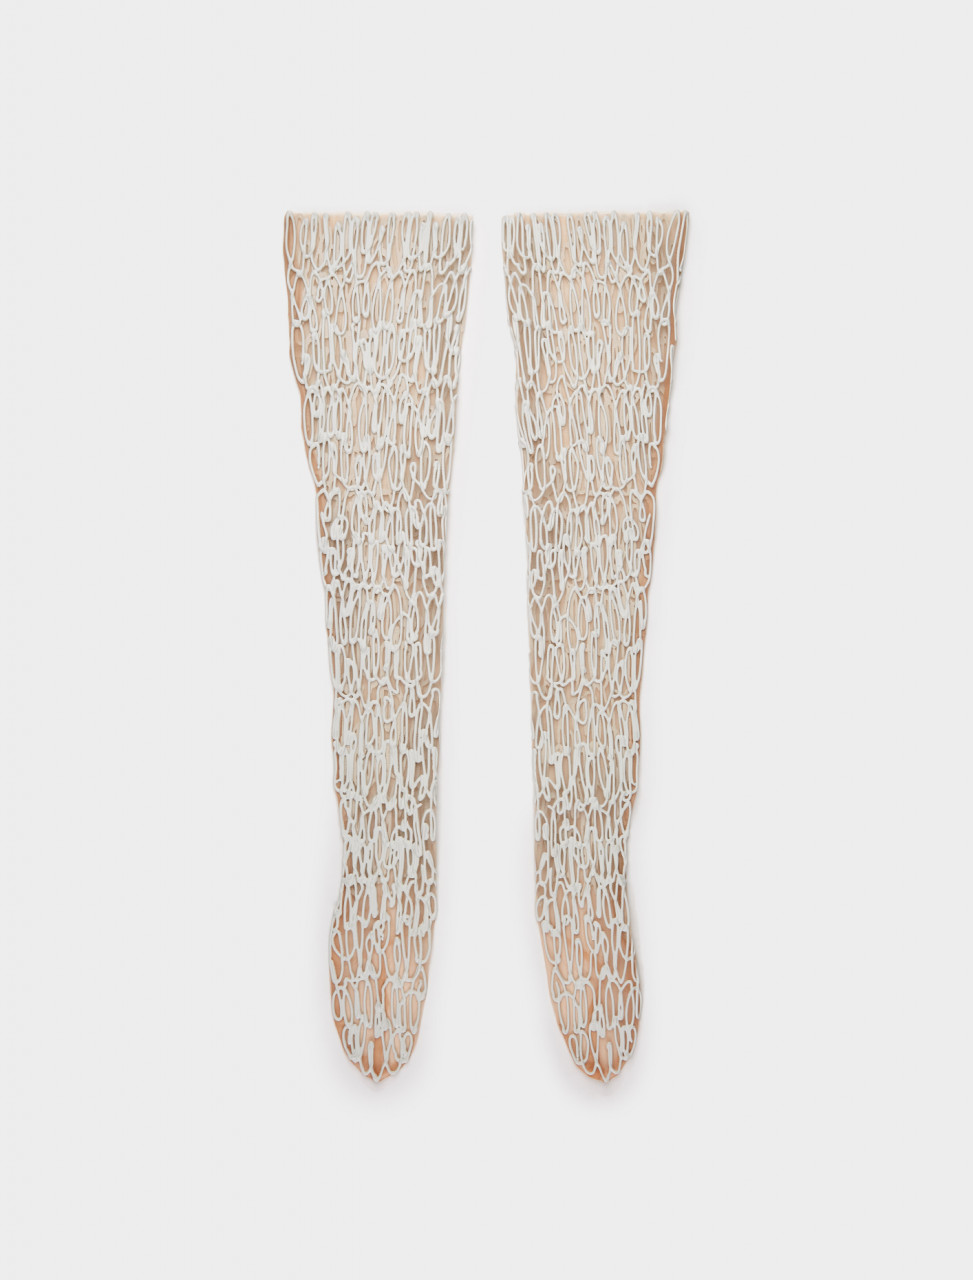 1000716 KASIA KUCHARSKA THIGH HIGHS WHITE